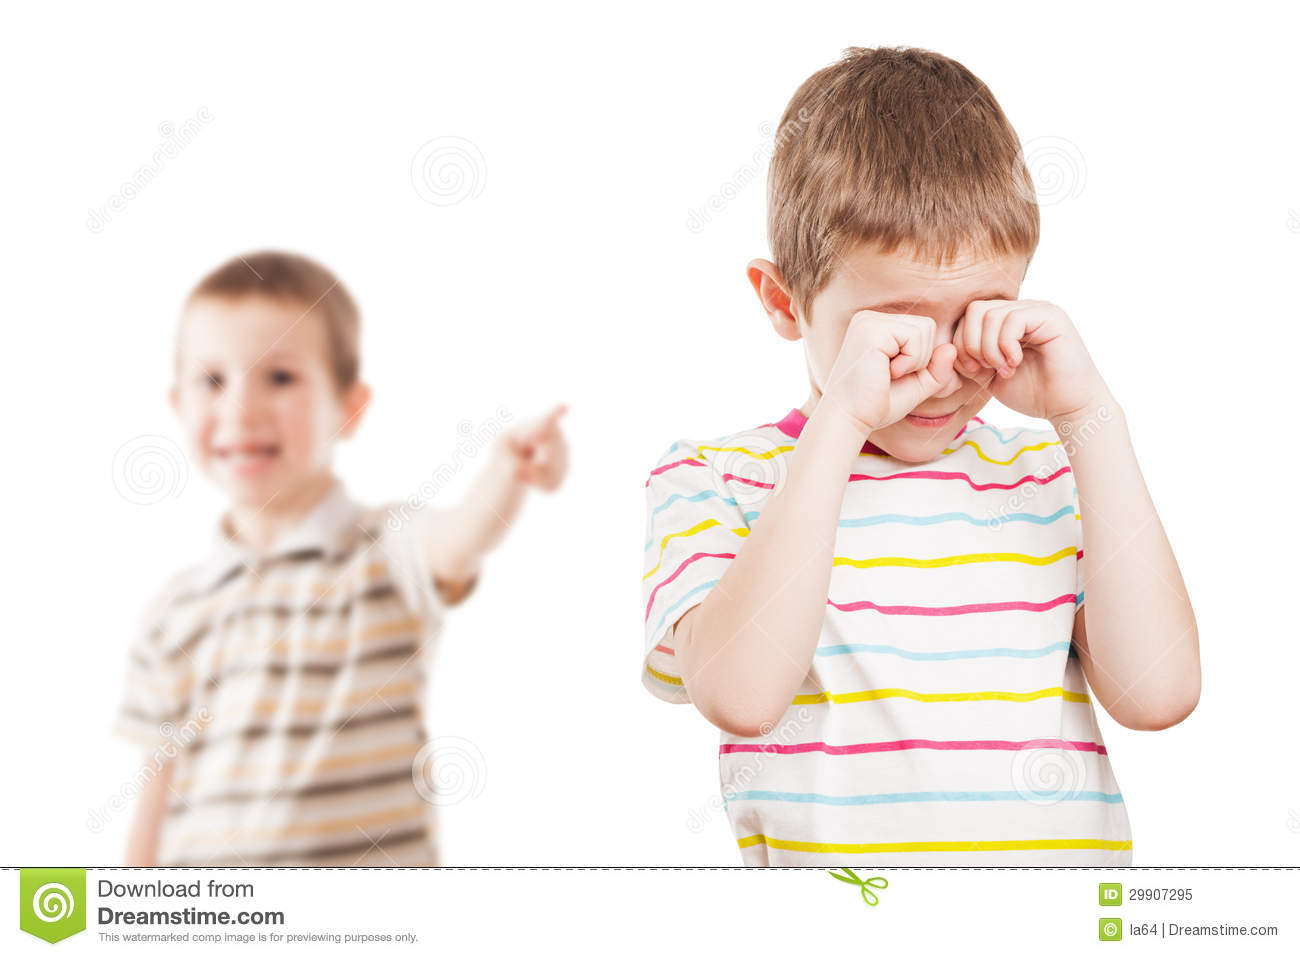 Children In Conflict Quarrel Royalty Free Stock Photo - Image ...